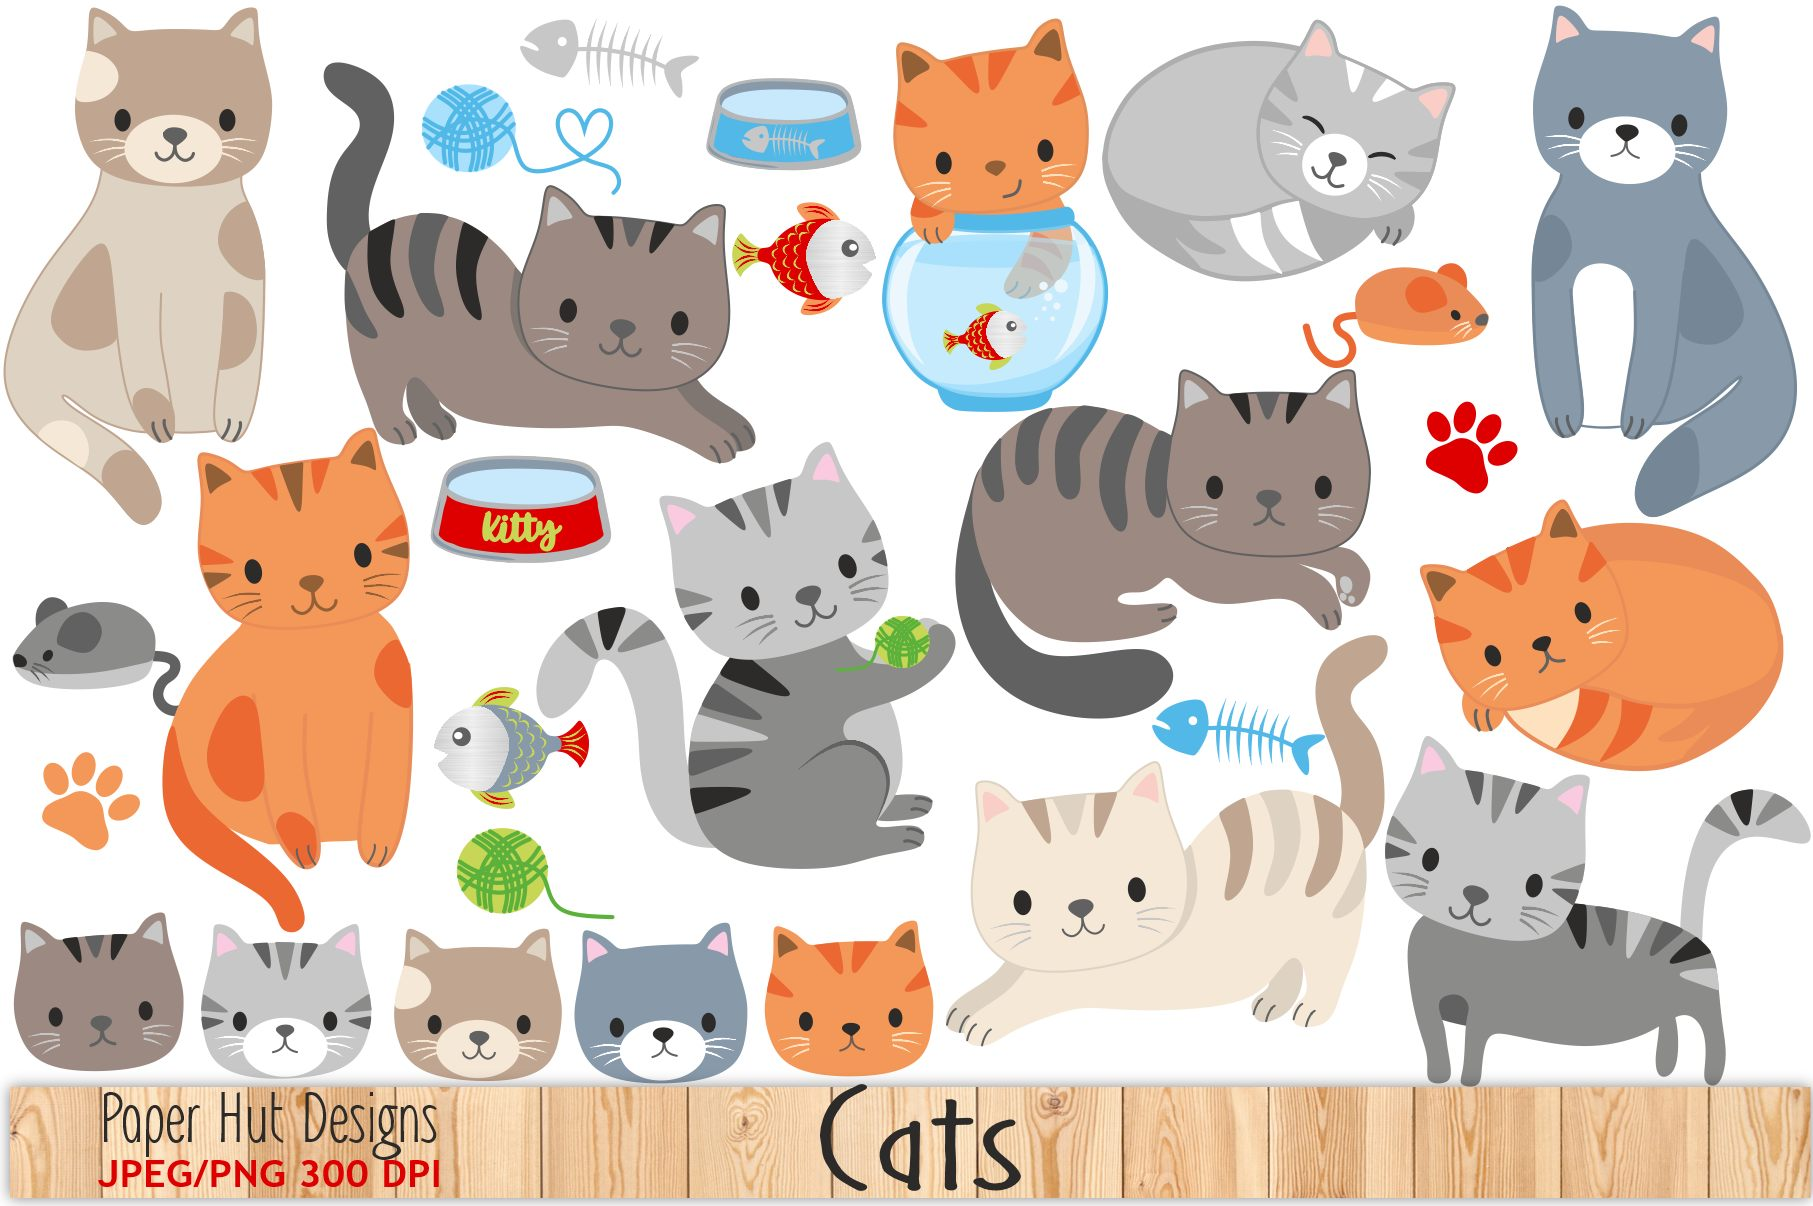 Cat pics clipart picture black and white Cute Cat Clipart picture black and white